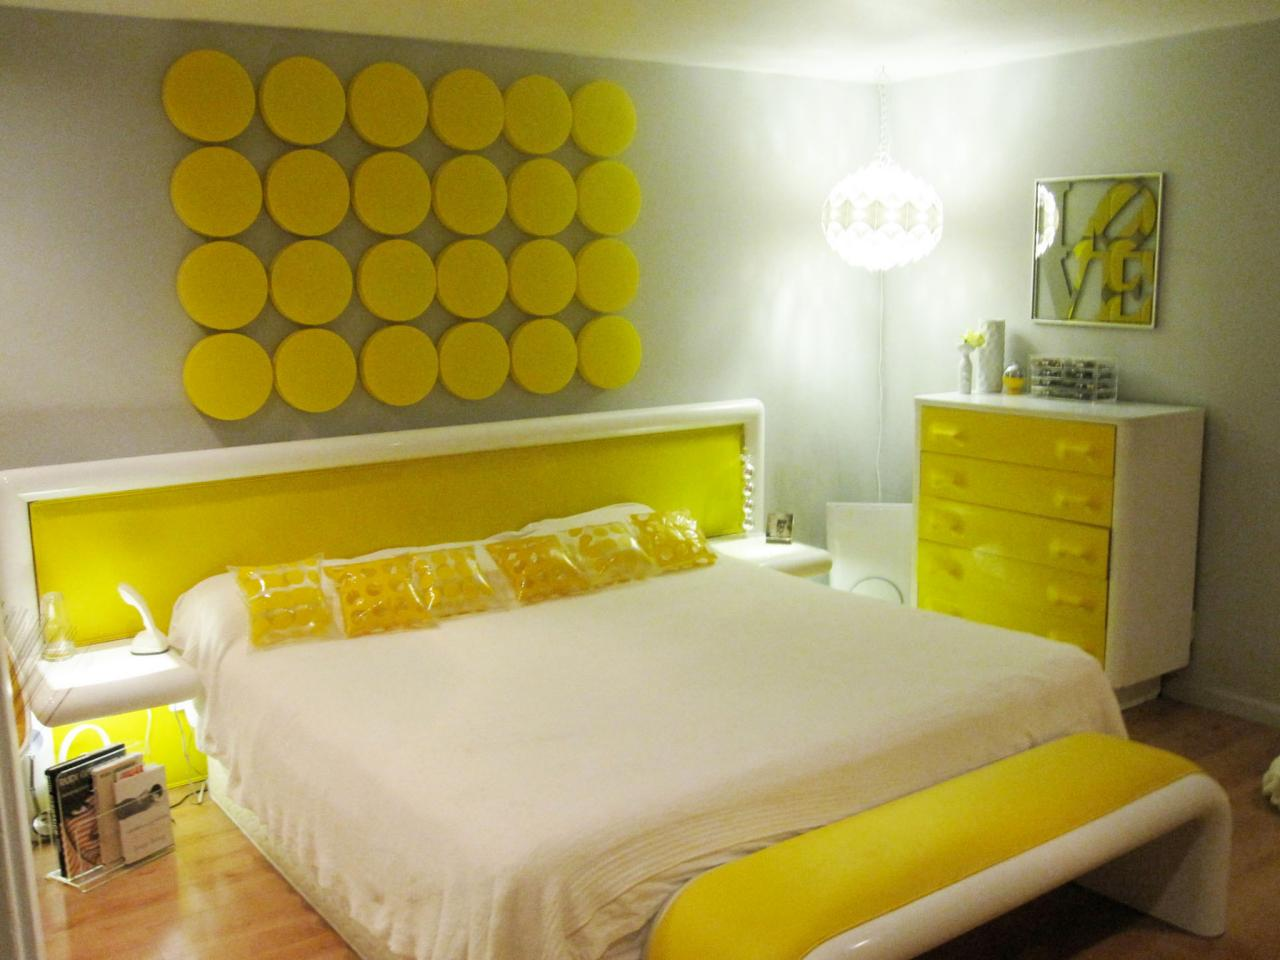 Bedroom colors yellow - Yellow Bedrooms